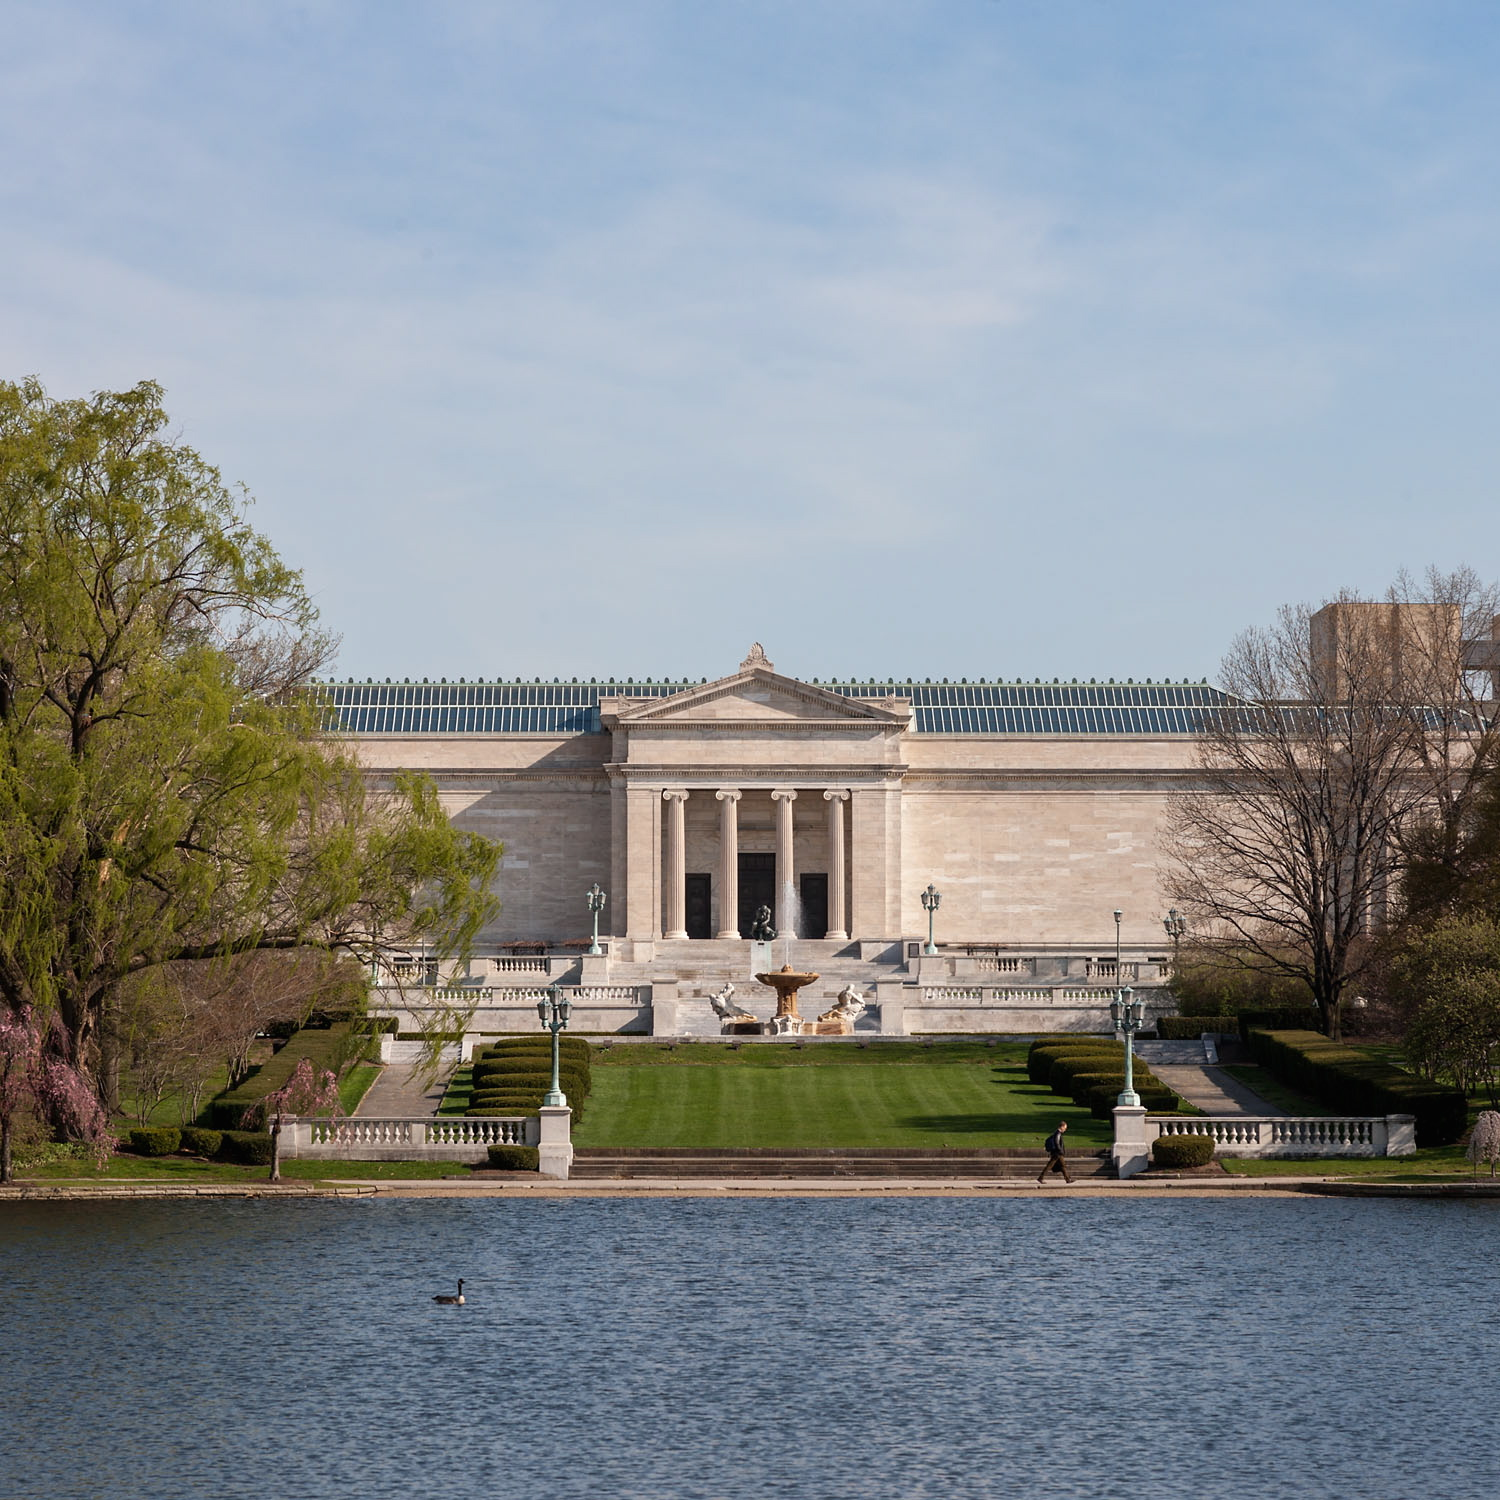 Cleveland: Cleveland Museum of Art